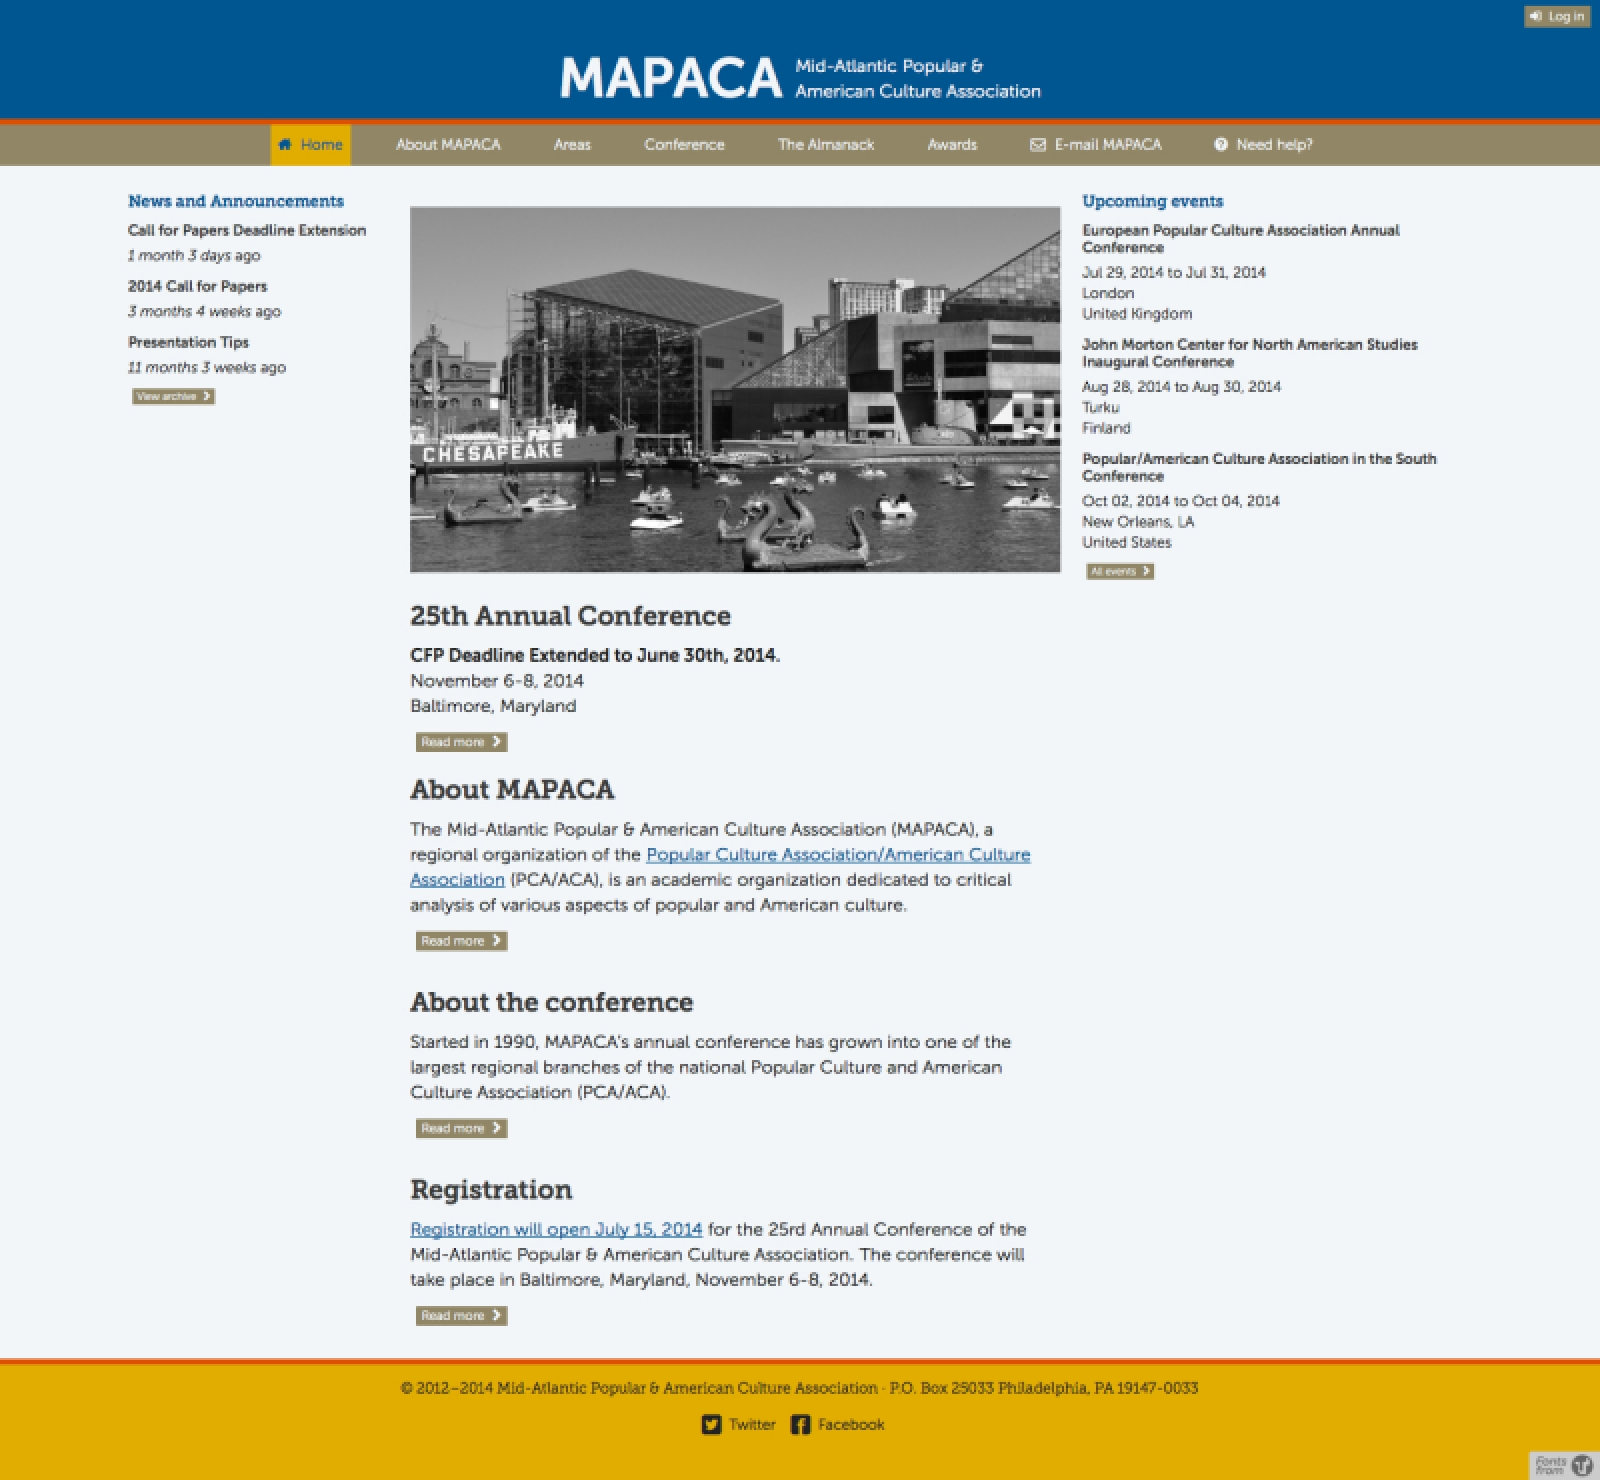 mapaca.net 2014 front page